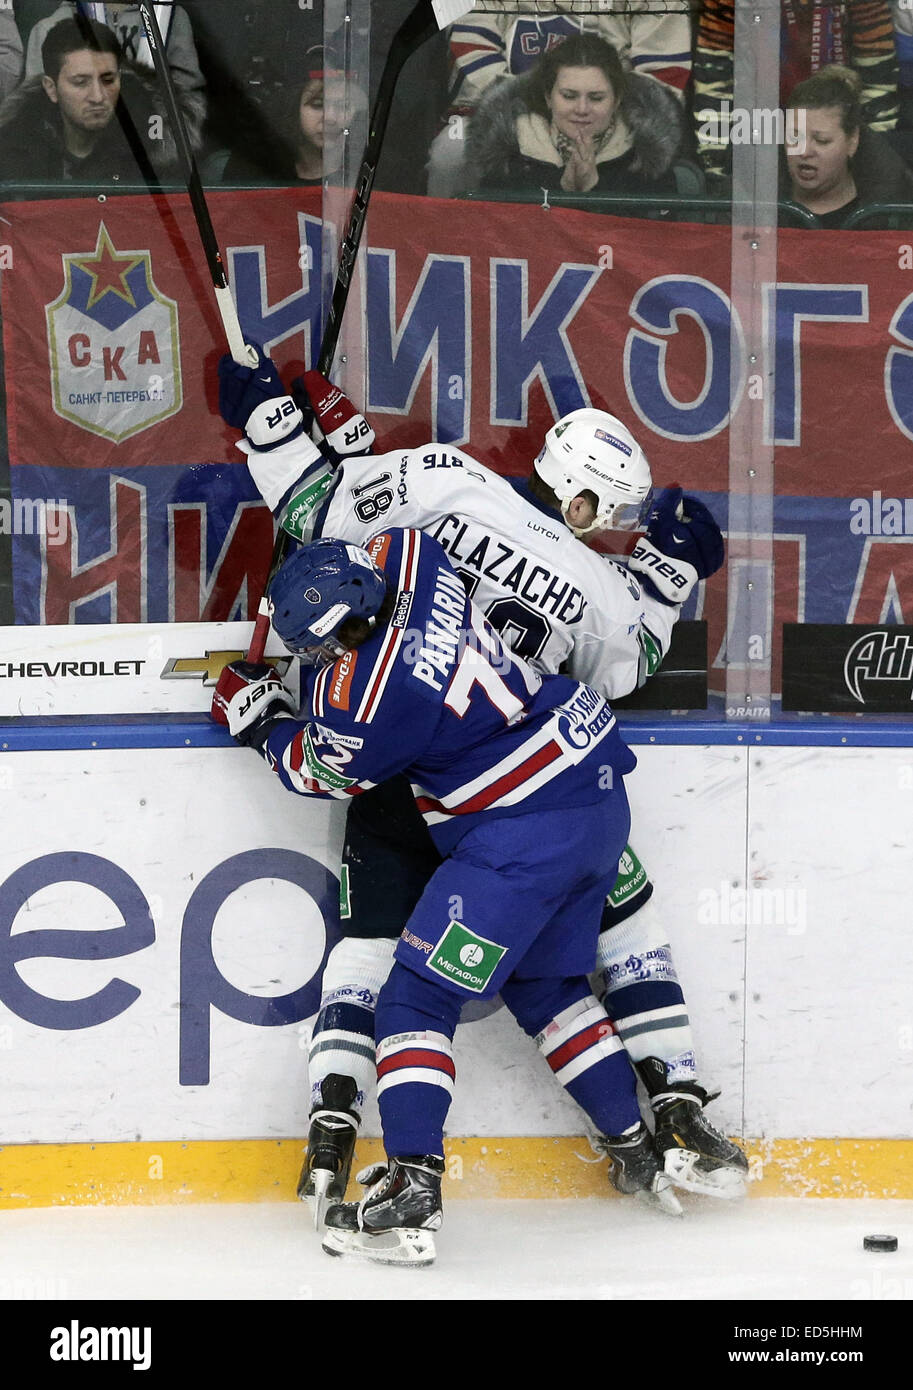 St. Petersburg, Russia. 28th Dec, 2014. SKA's Artemy Panarin (foreground) and Dynamo's Konstantin Glazachev and Stock Photo